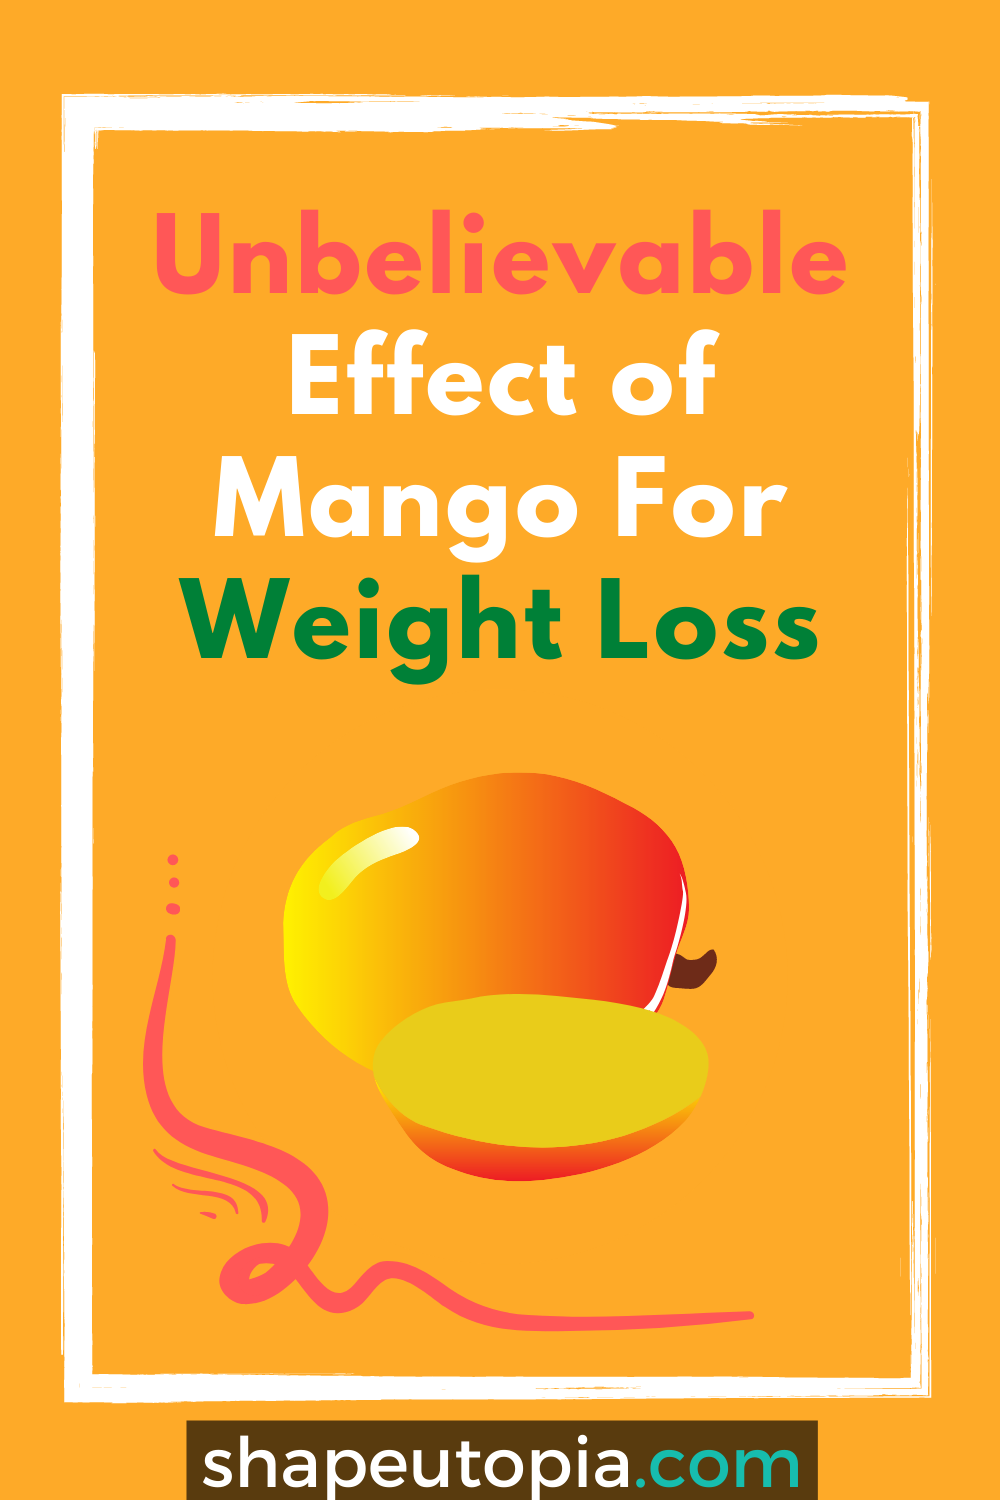 Unbelievable Effect of Mango For Weight Loss